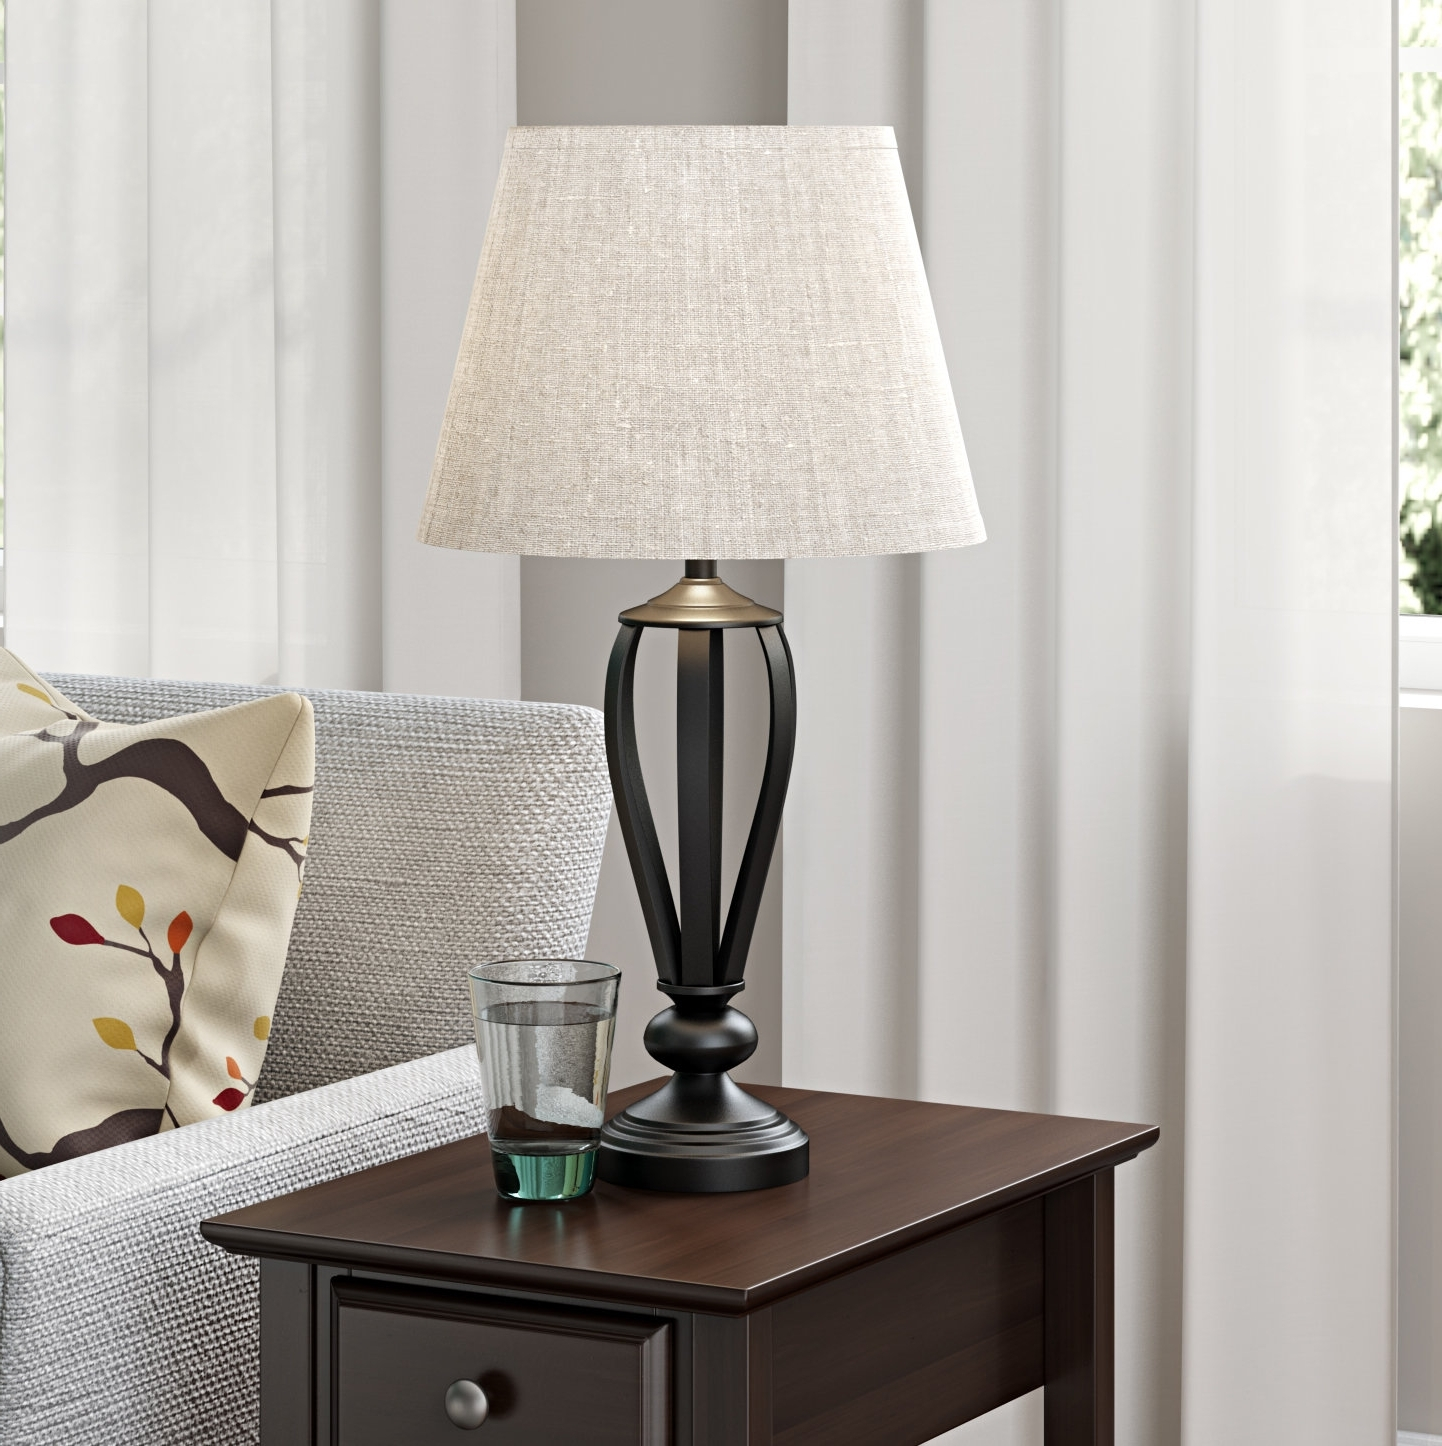 Wayfair For Most Recent Table Lamps For Living Room (View 3 of 15)